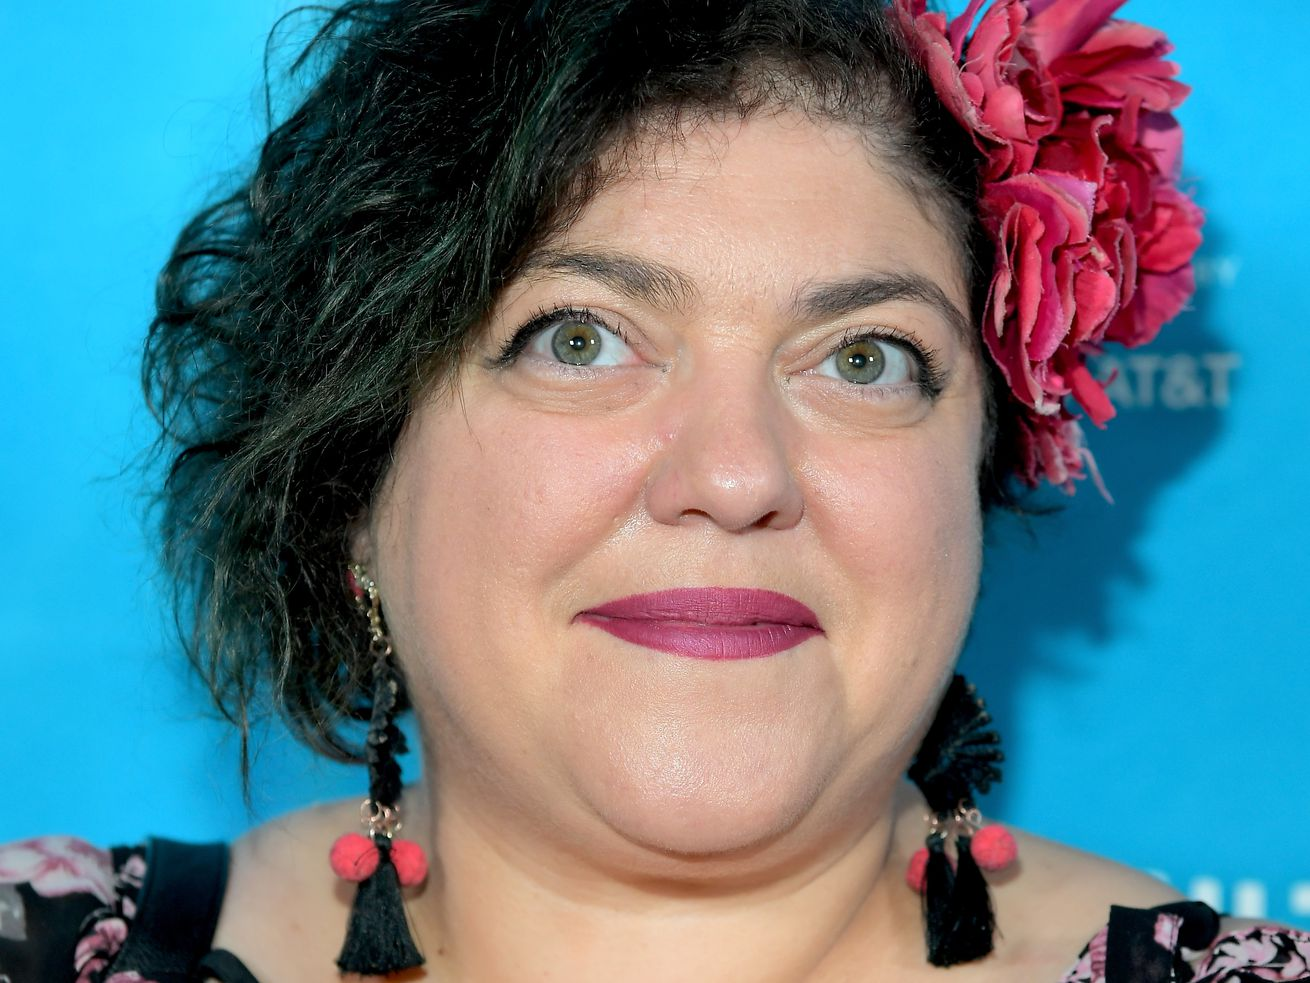 English professor Randa Jarrar, whose tweets about former first lady Barbara Bush have caused controversy, pictured in November 2017.